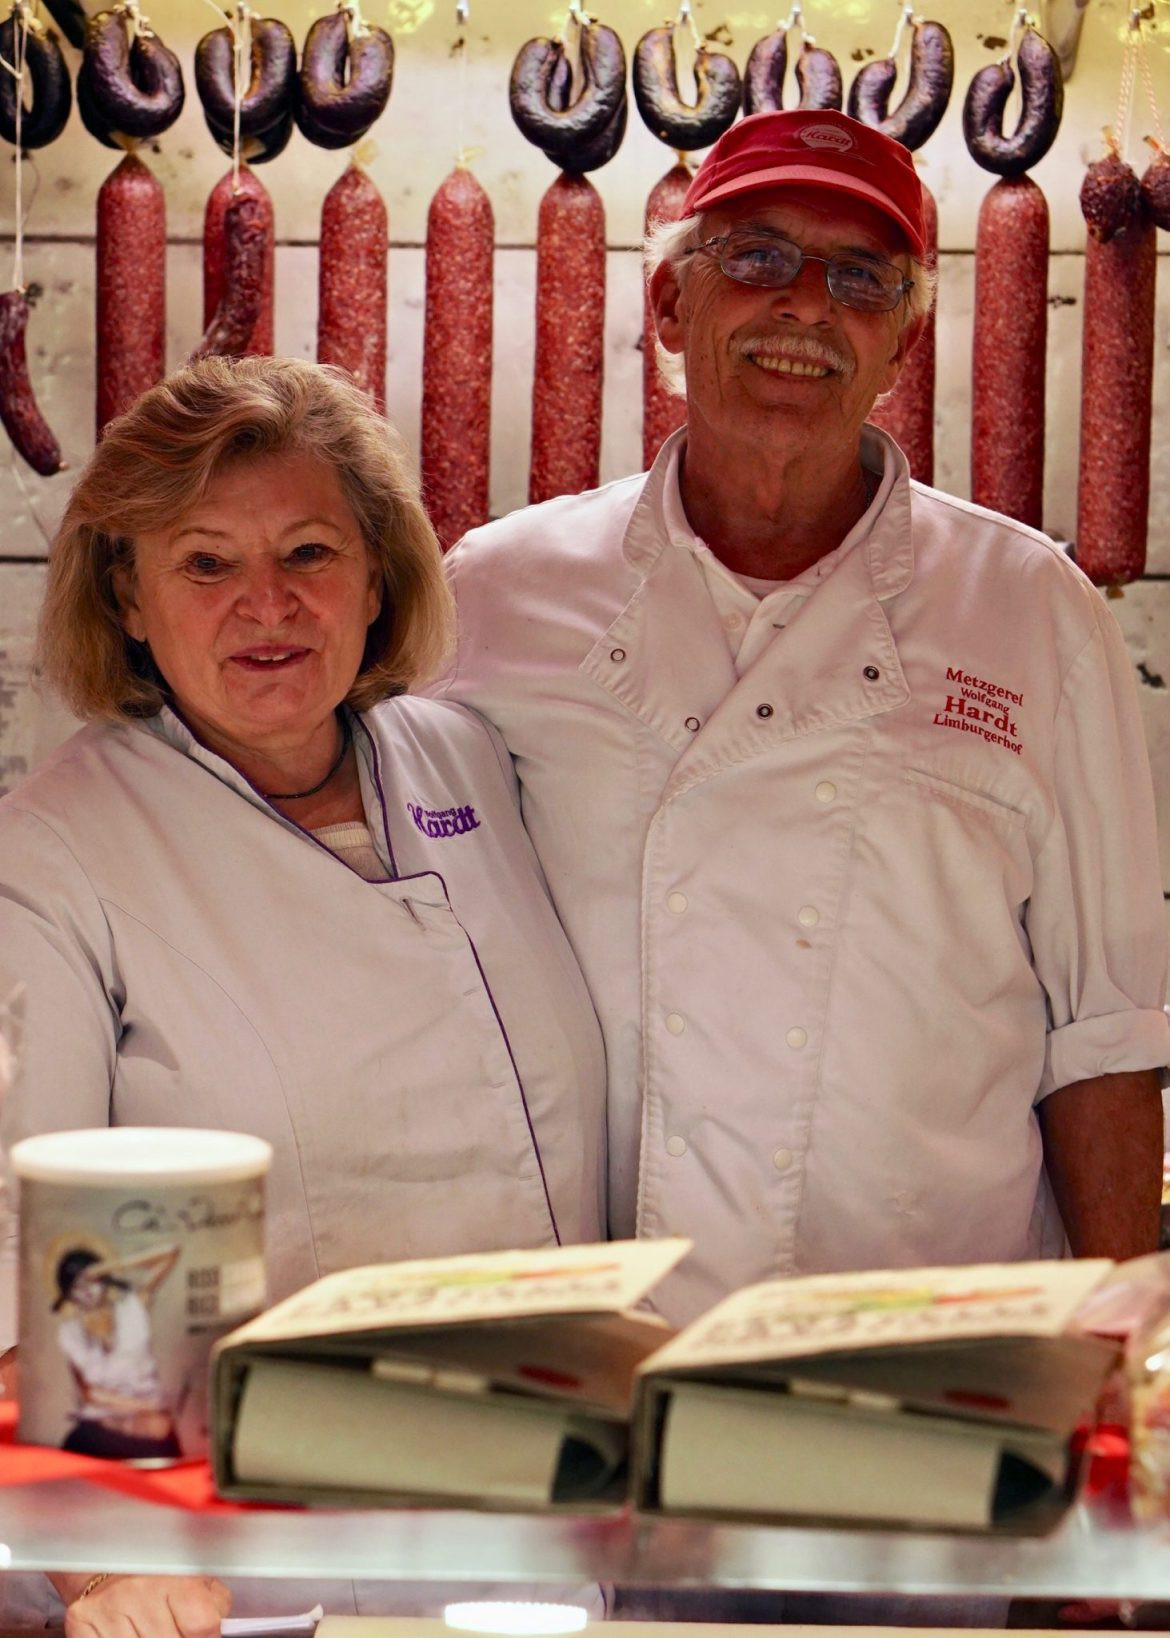 Anne-Marie and Wolfgang Hardt wearing white butcher's aprons behind their butcher's counter